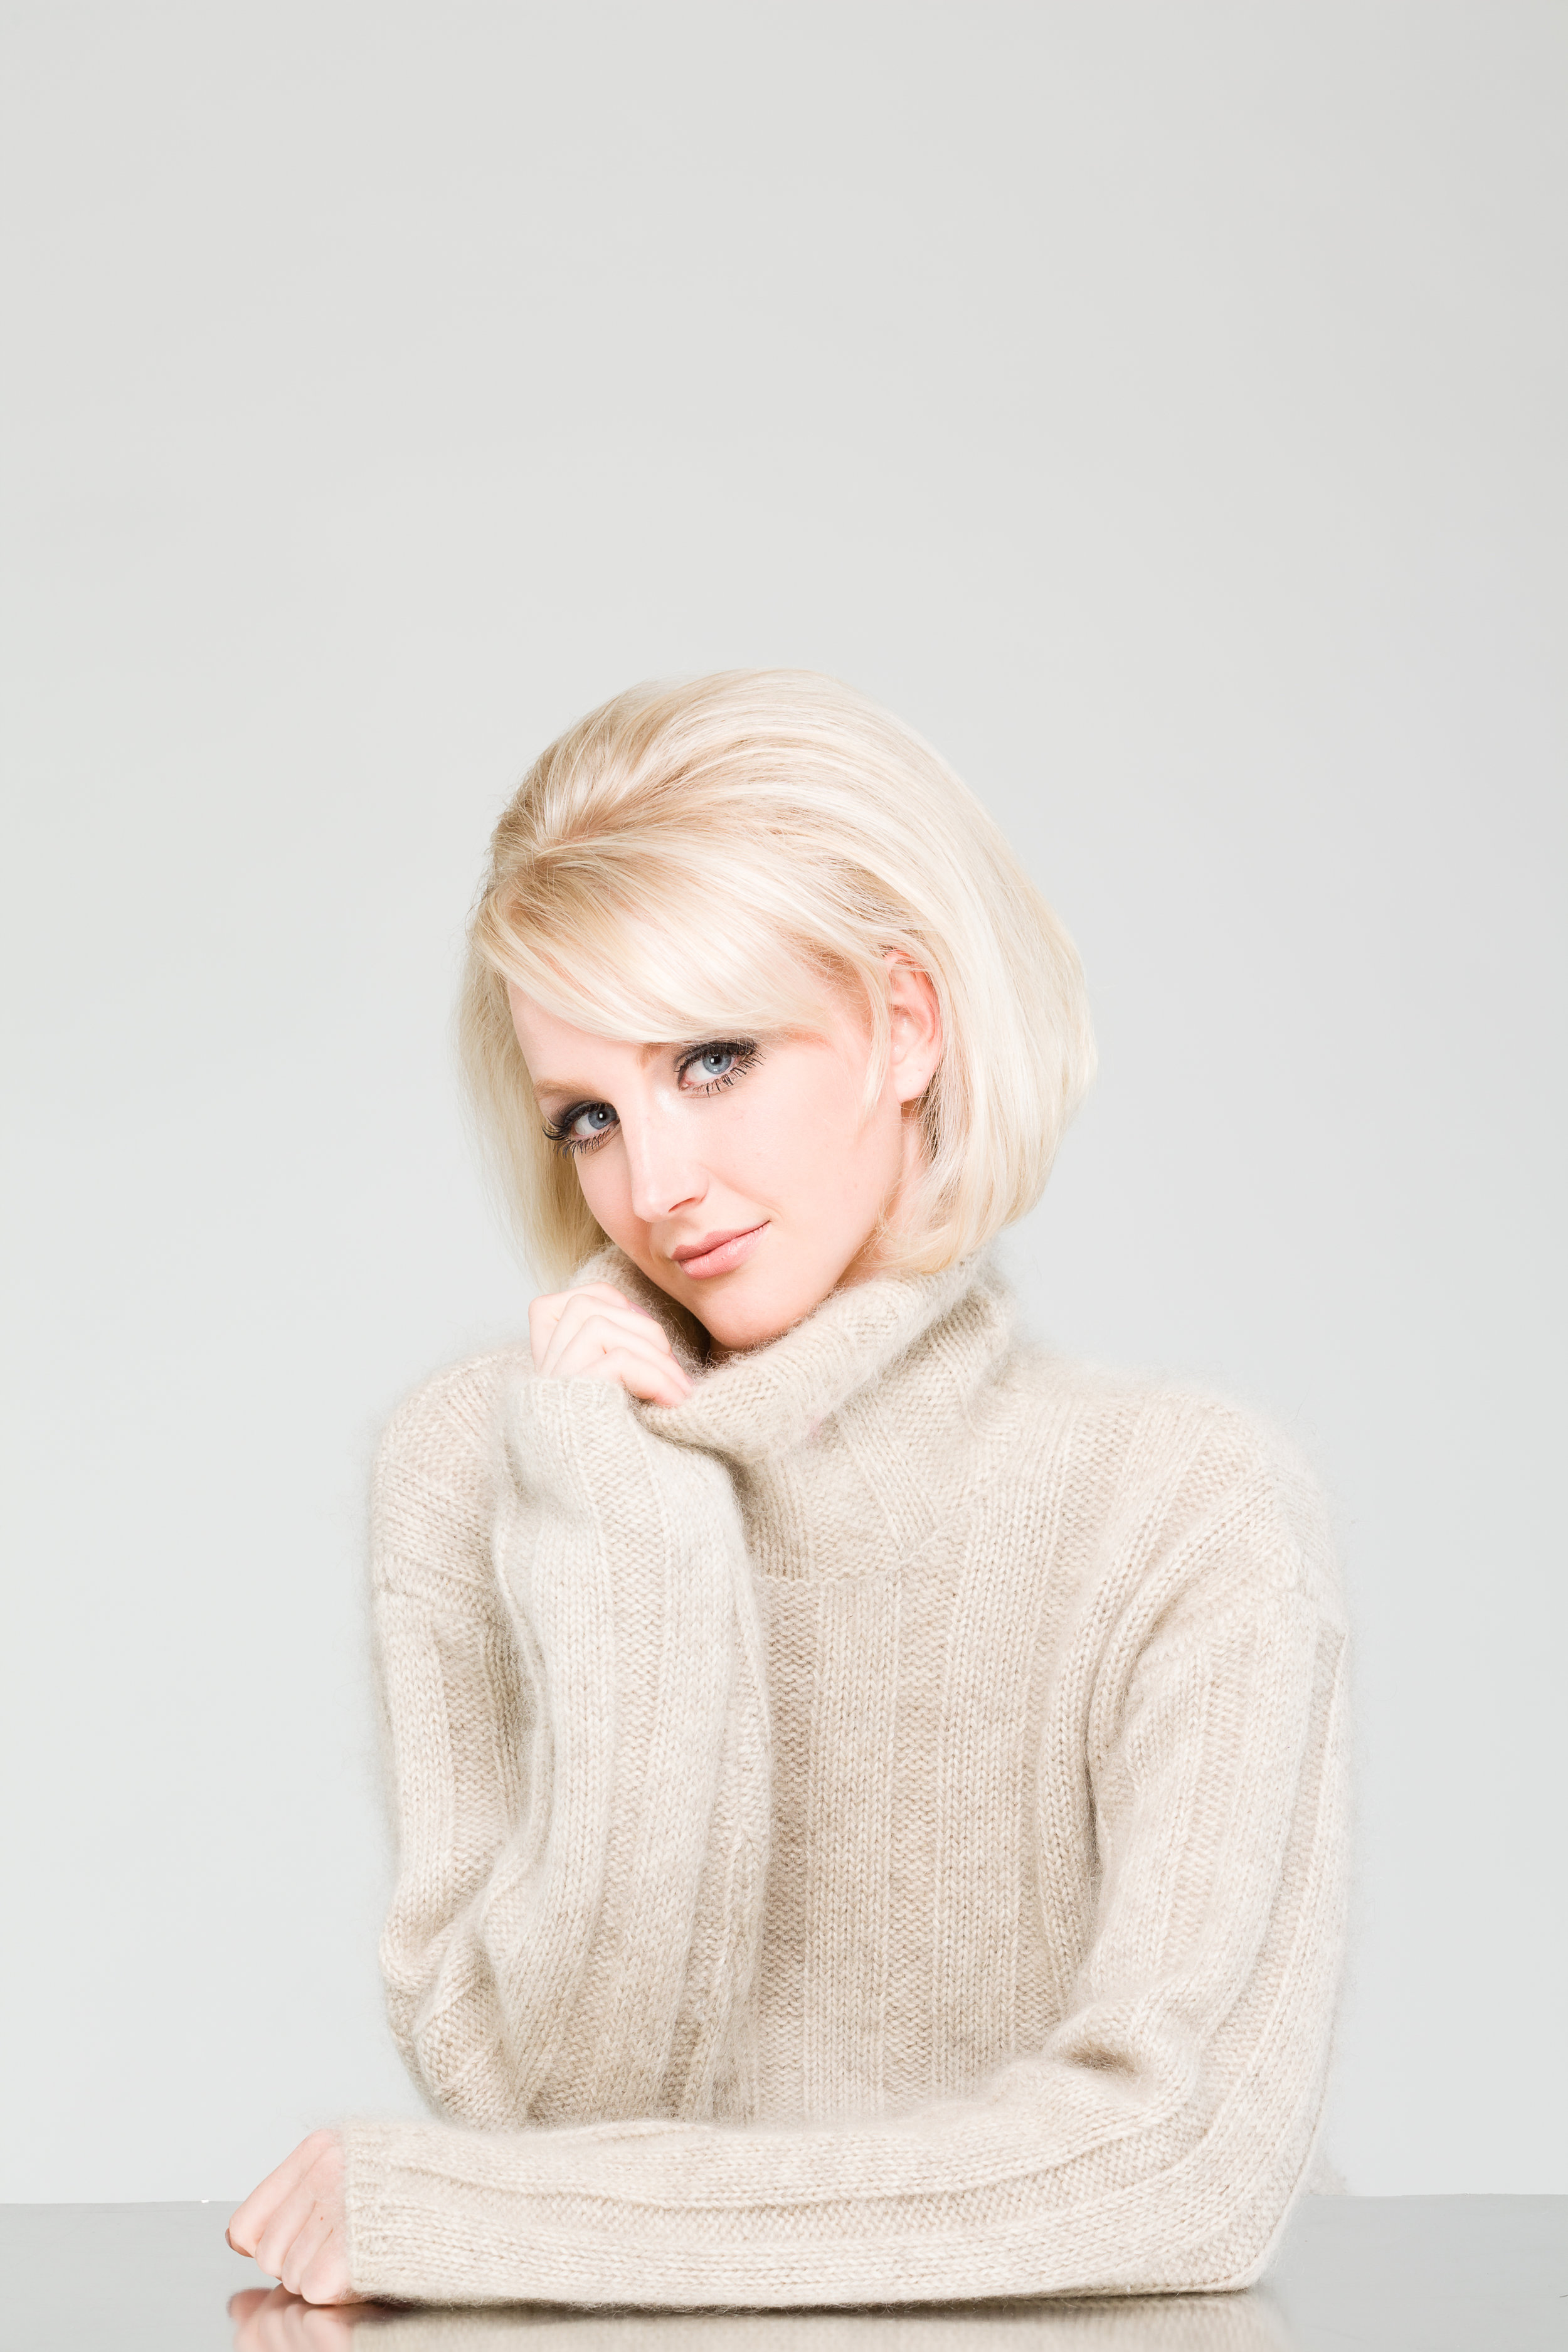 07 editorial, 60s hair, vintage, vintage hair, blonde hair, platinum hair.jpg